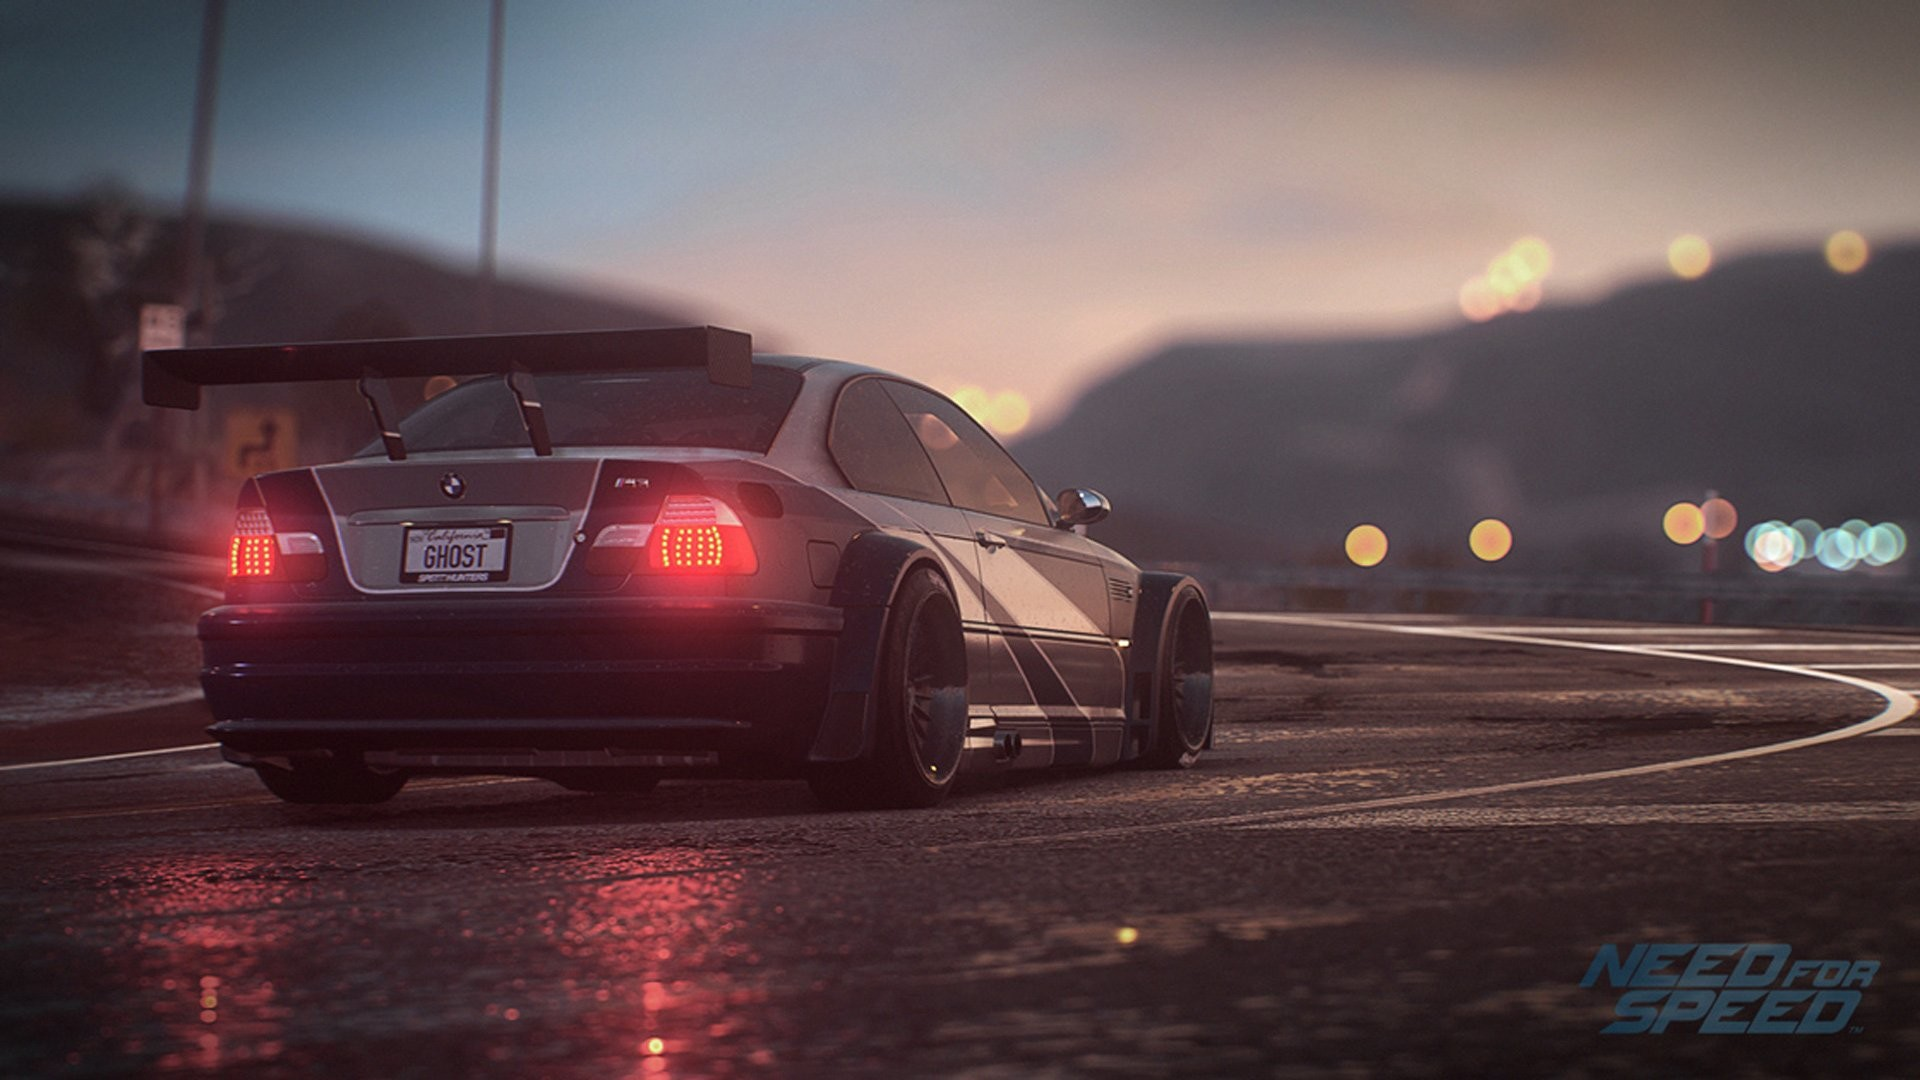 Need For Speed Wallpapers Wallpapertag